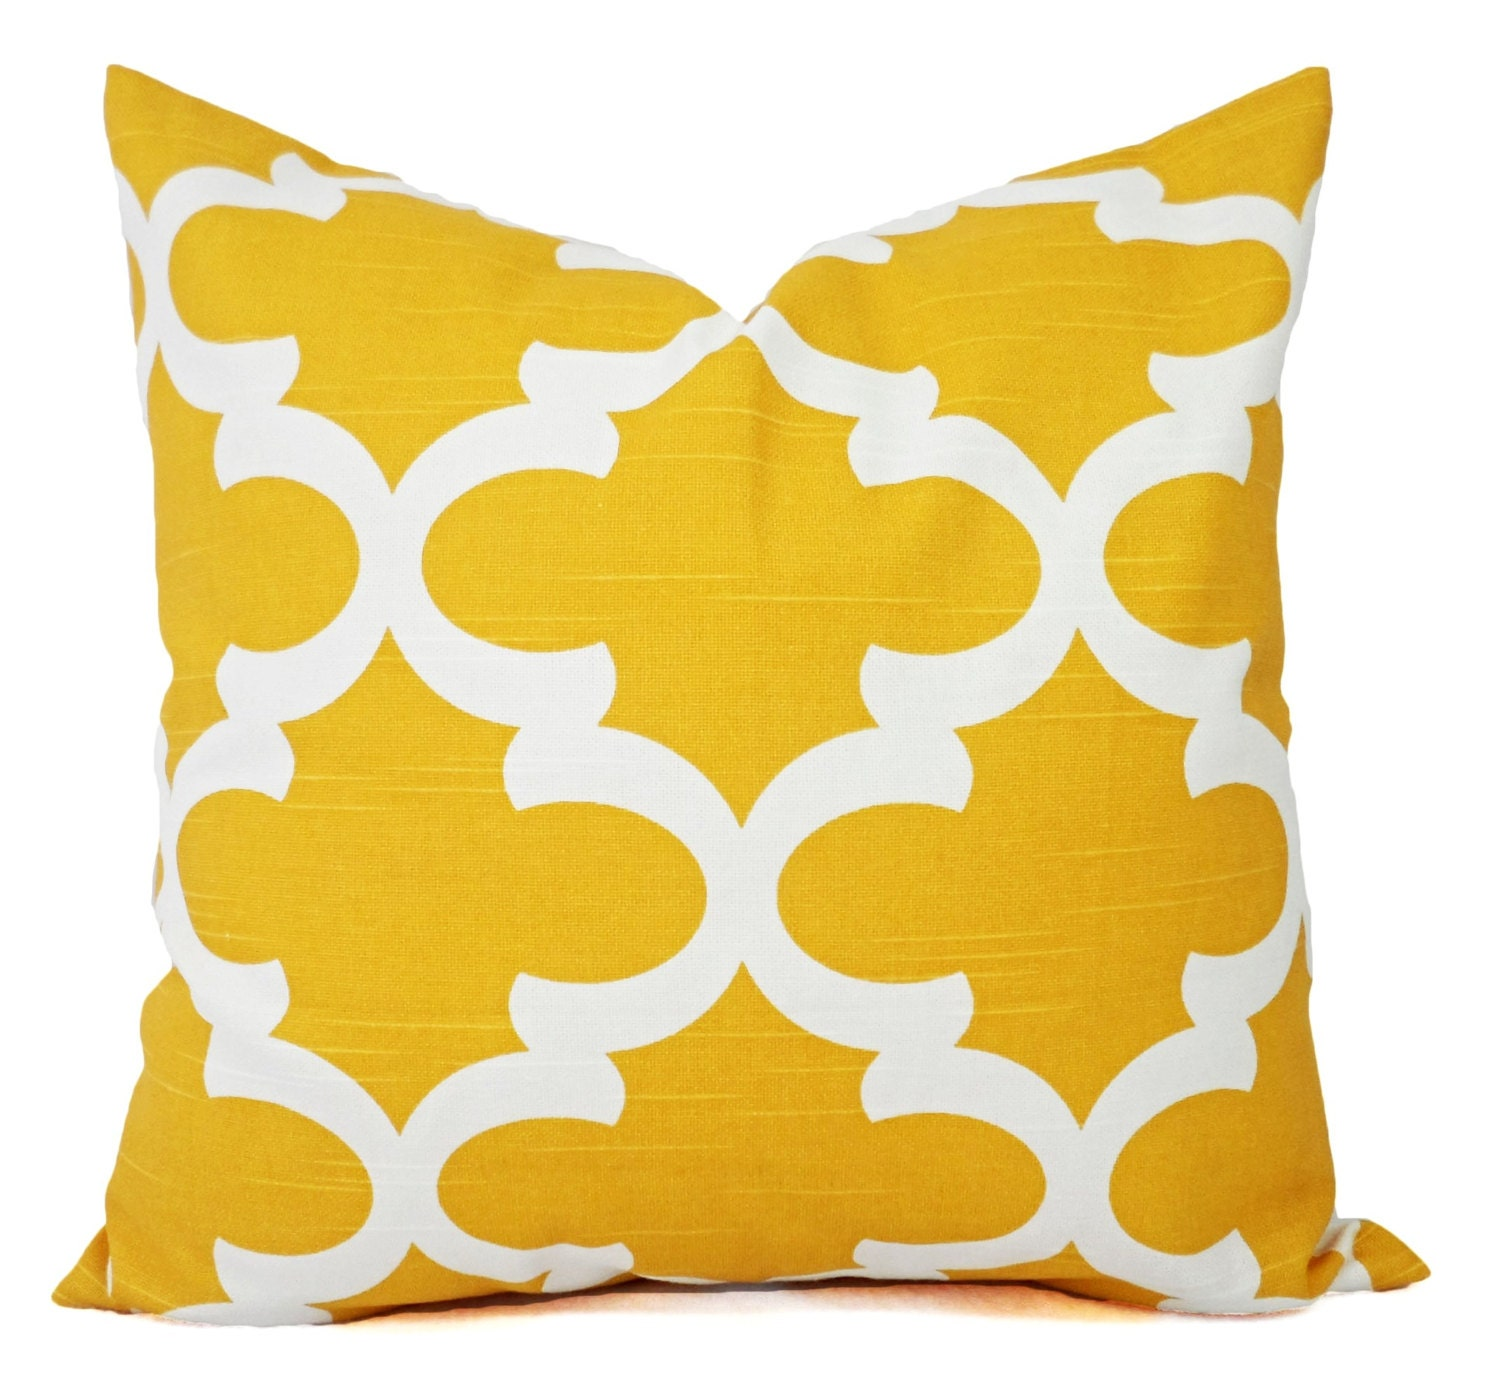 Throw Pillow Yellow : Yellow Decorative Pillows Two Yellow Throw Pillow Covers